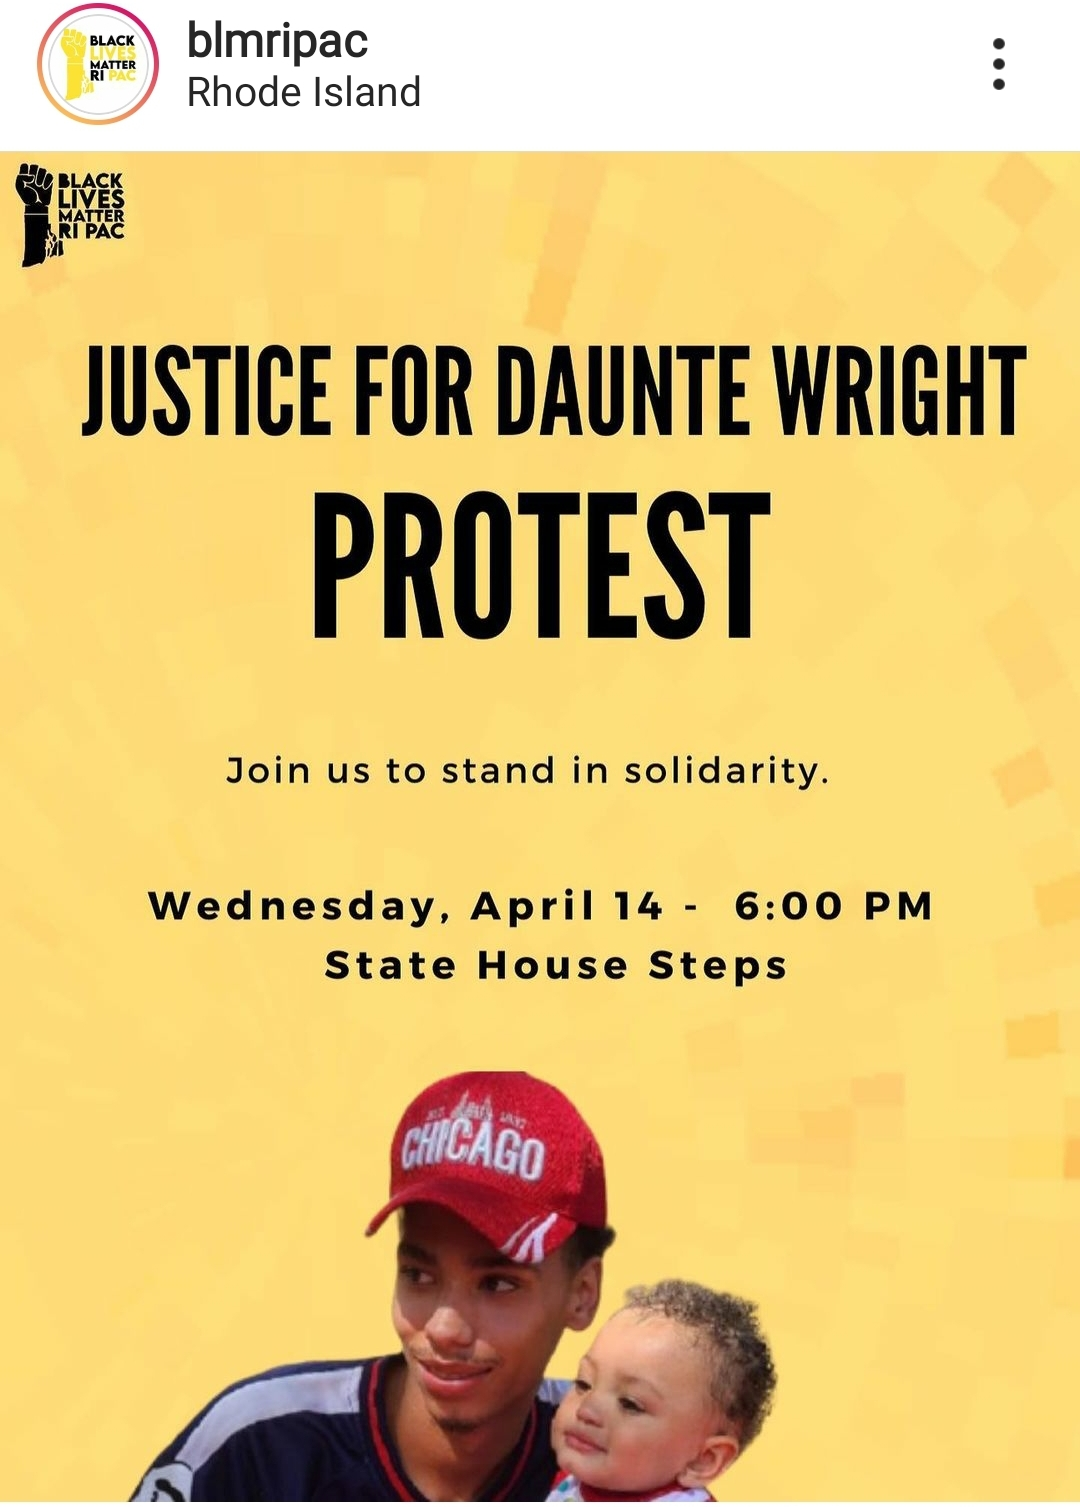 Be Prepared: Protest Wednesday for Daunte Wright